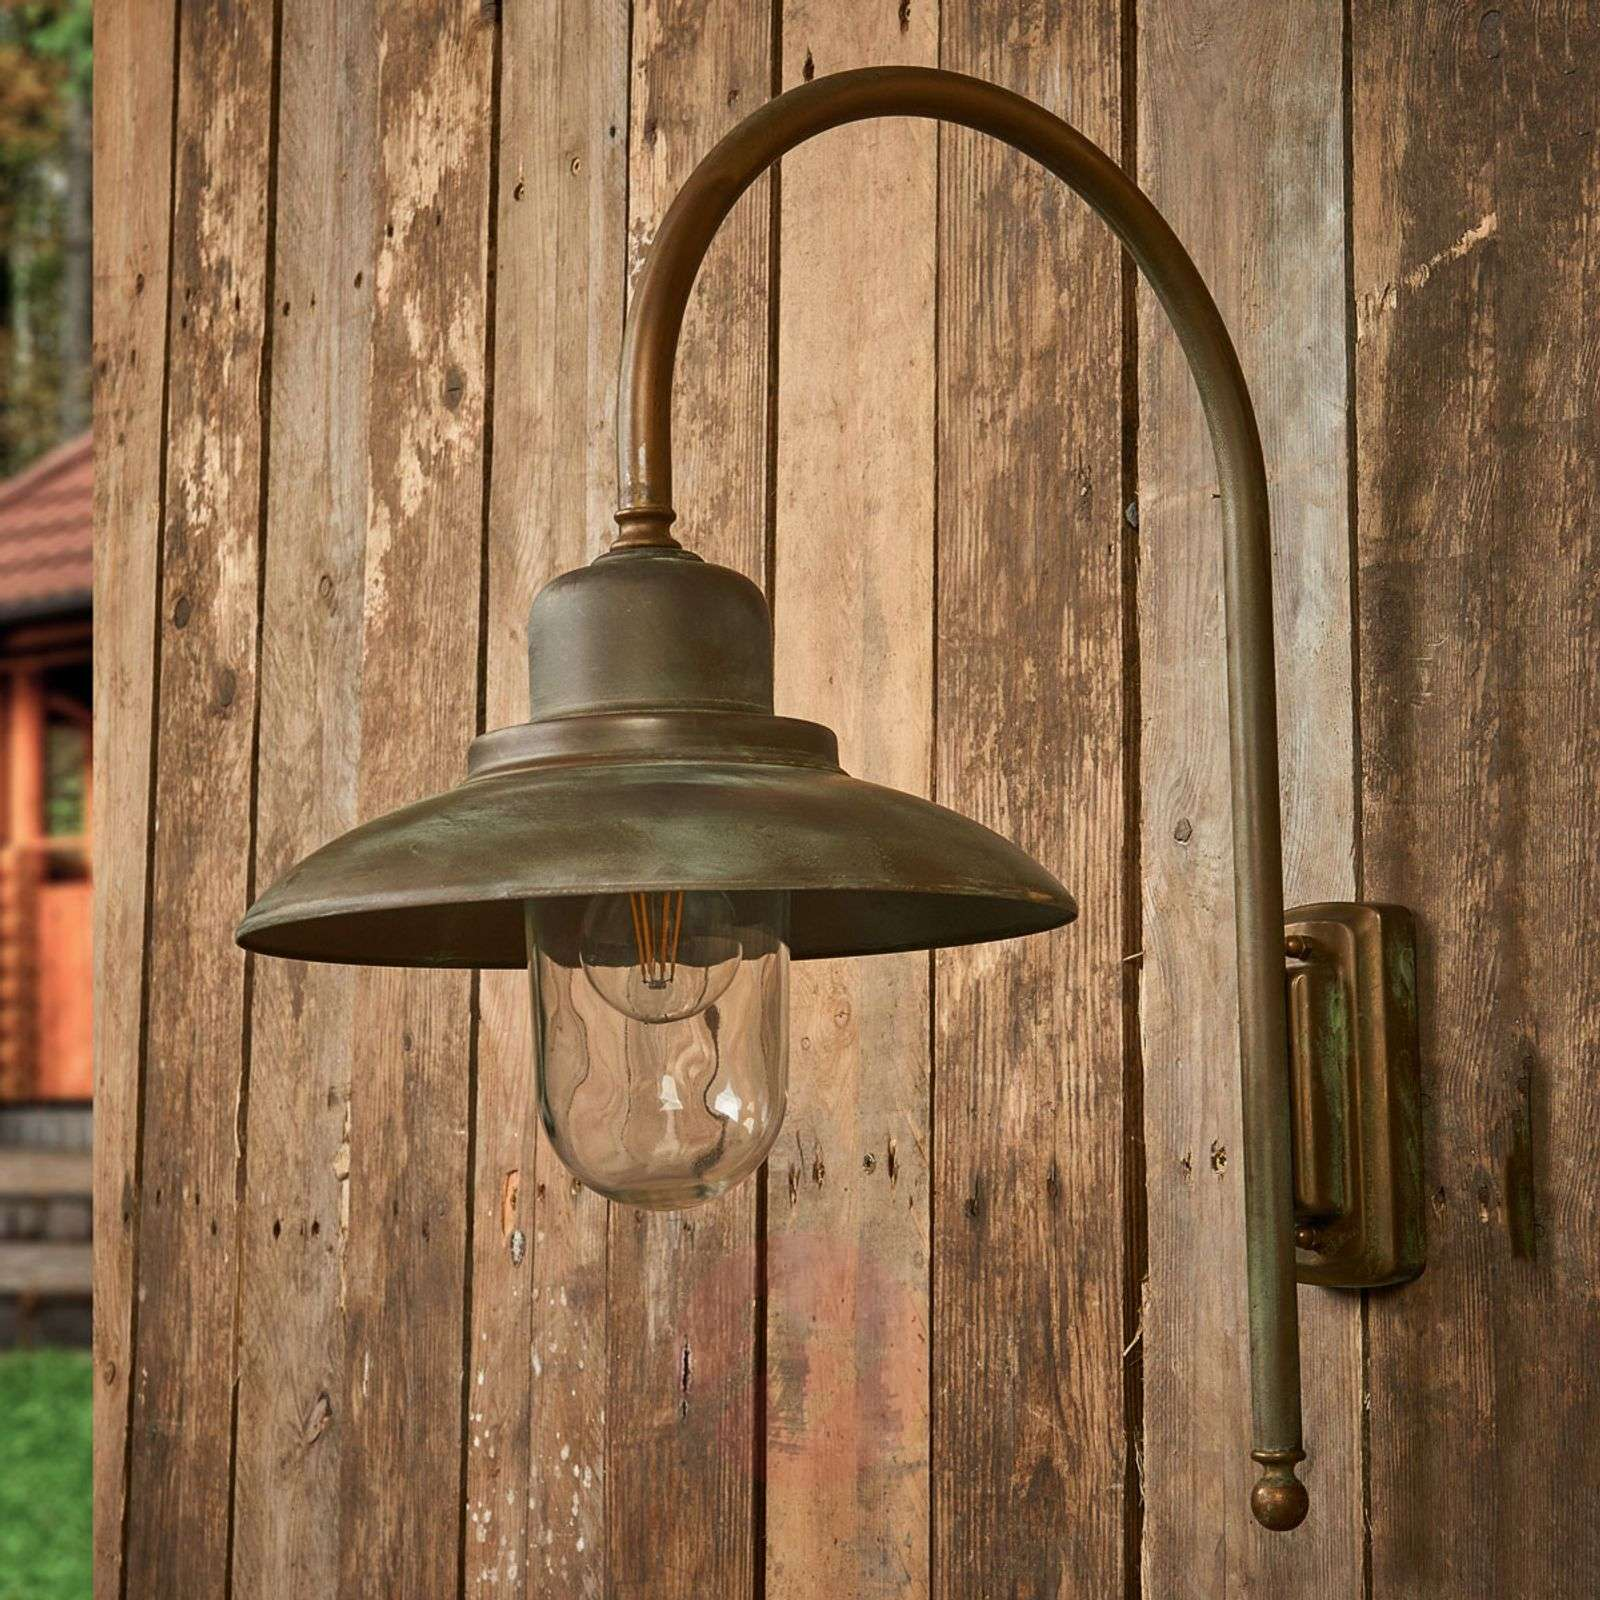 Casale an outdoor wall light with charm-6515289-01